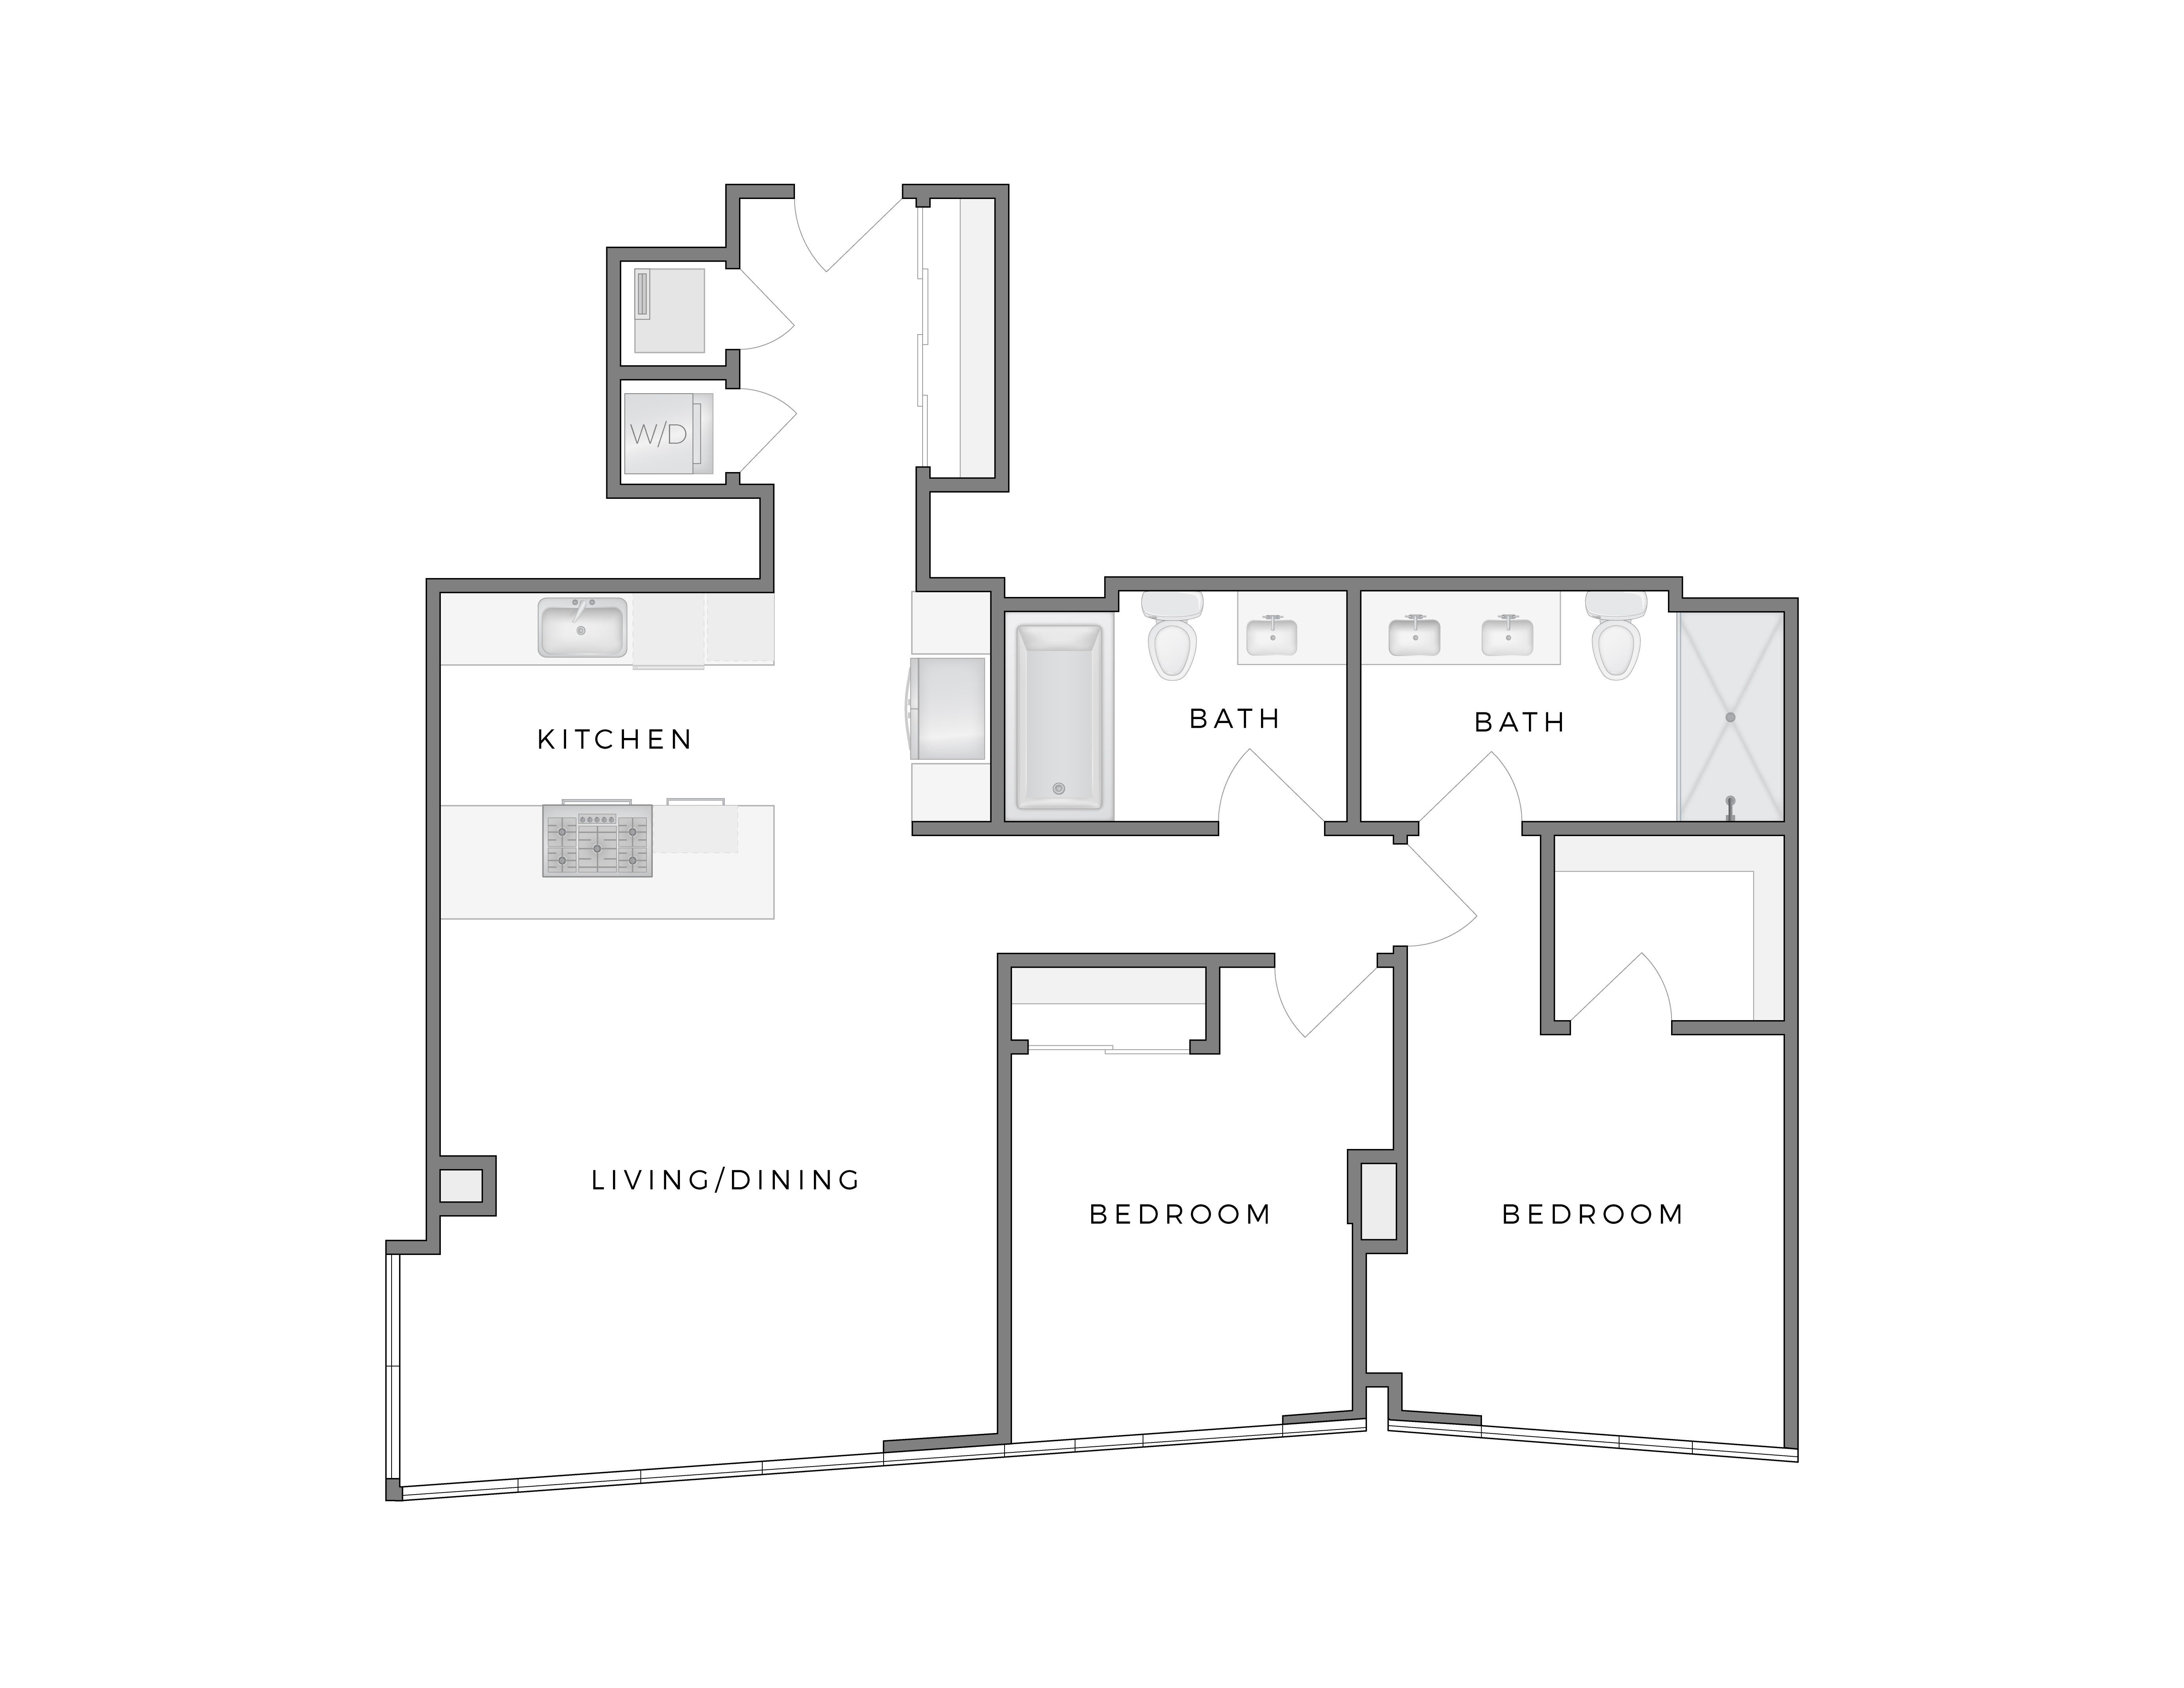 Atelier Warhol 4 apartment floorplan diagram with two bedrooms, two bathrooms, kitchen, and living dining area